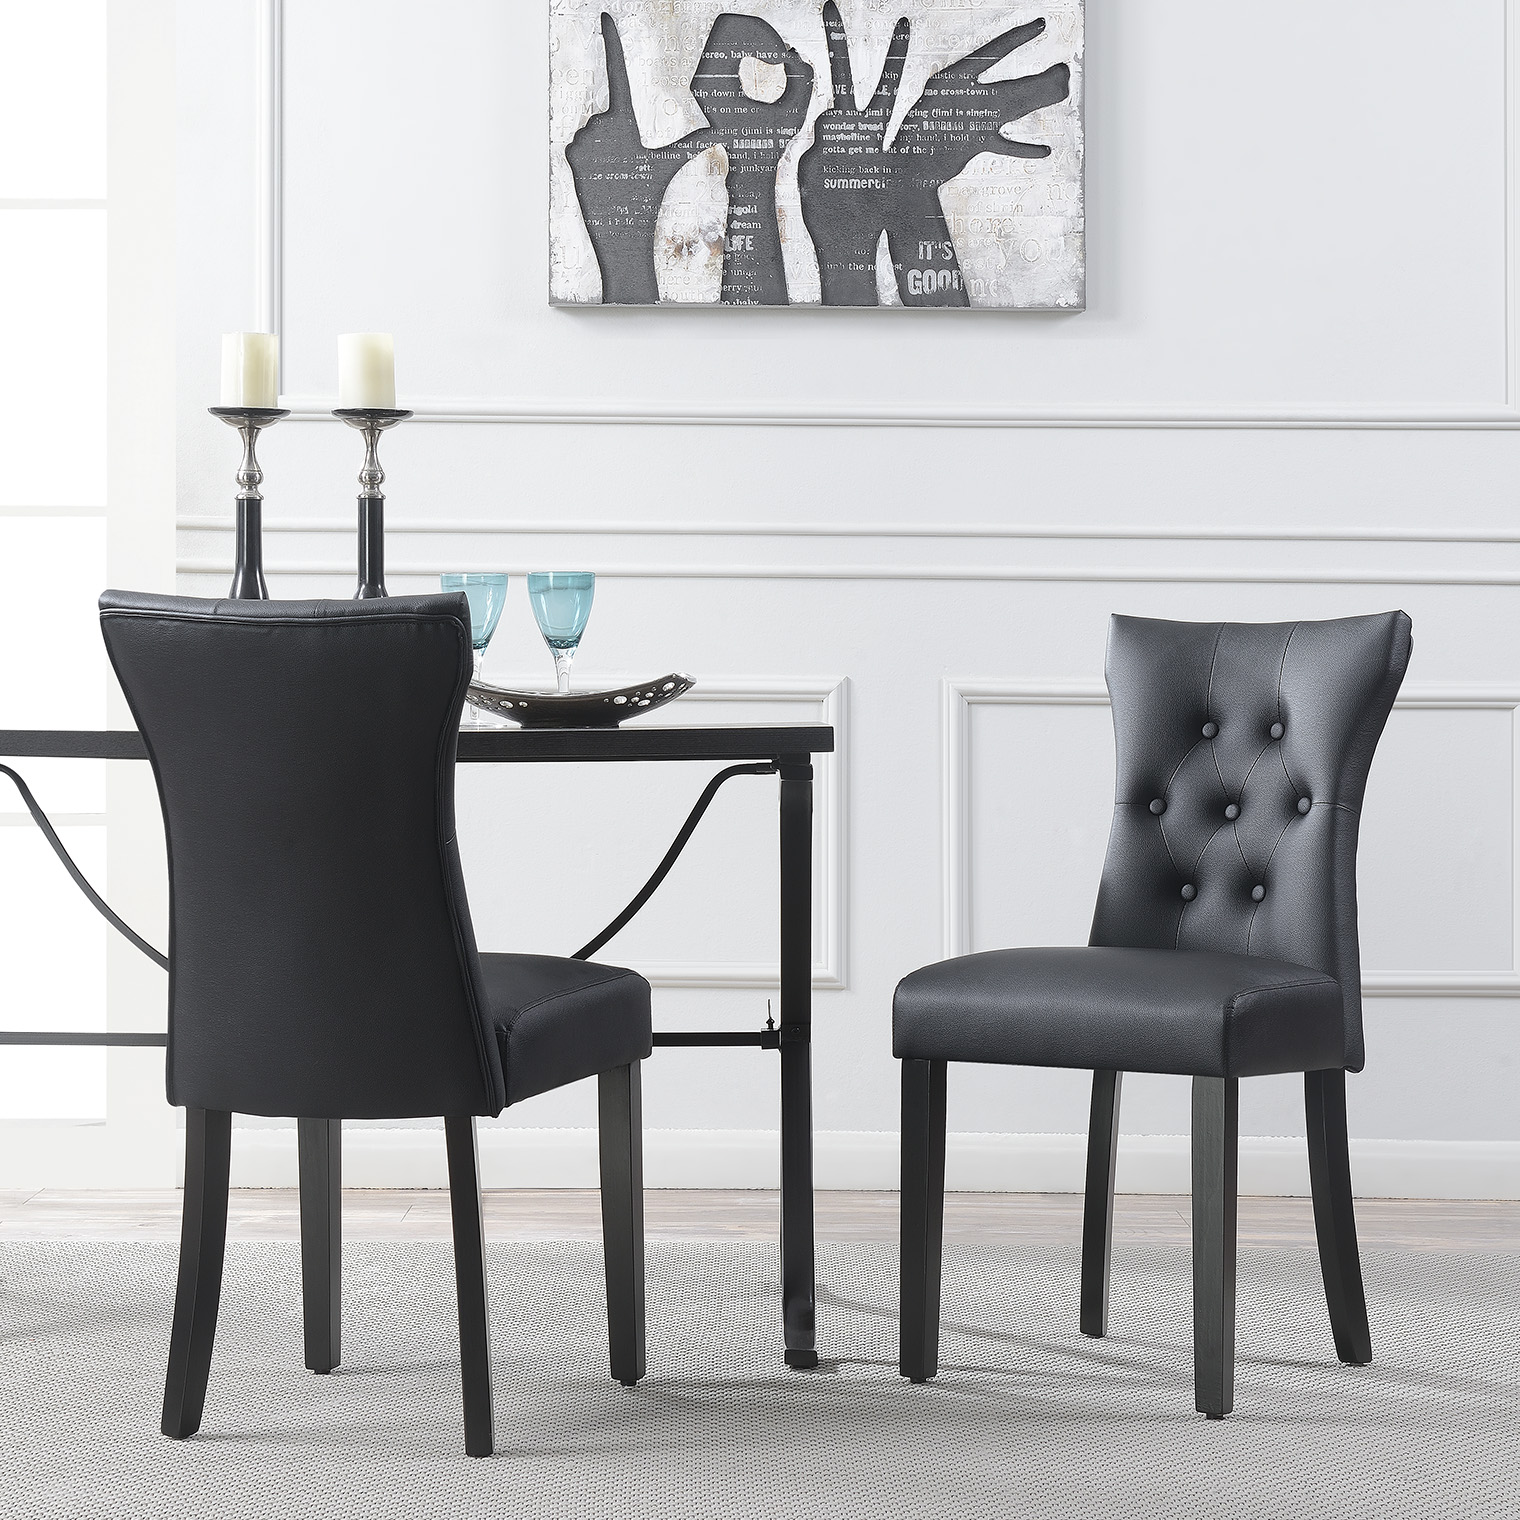 Set Of (2) Modern Dining Chair Faux Leather Nailhead